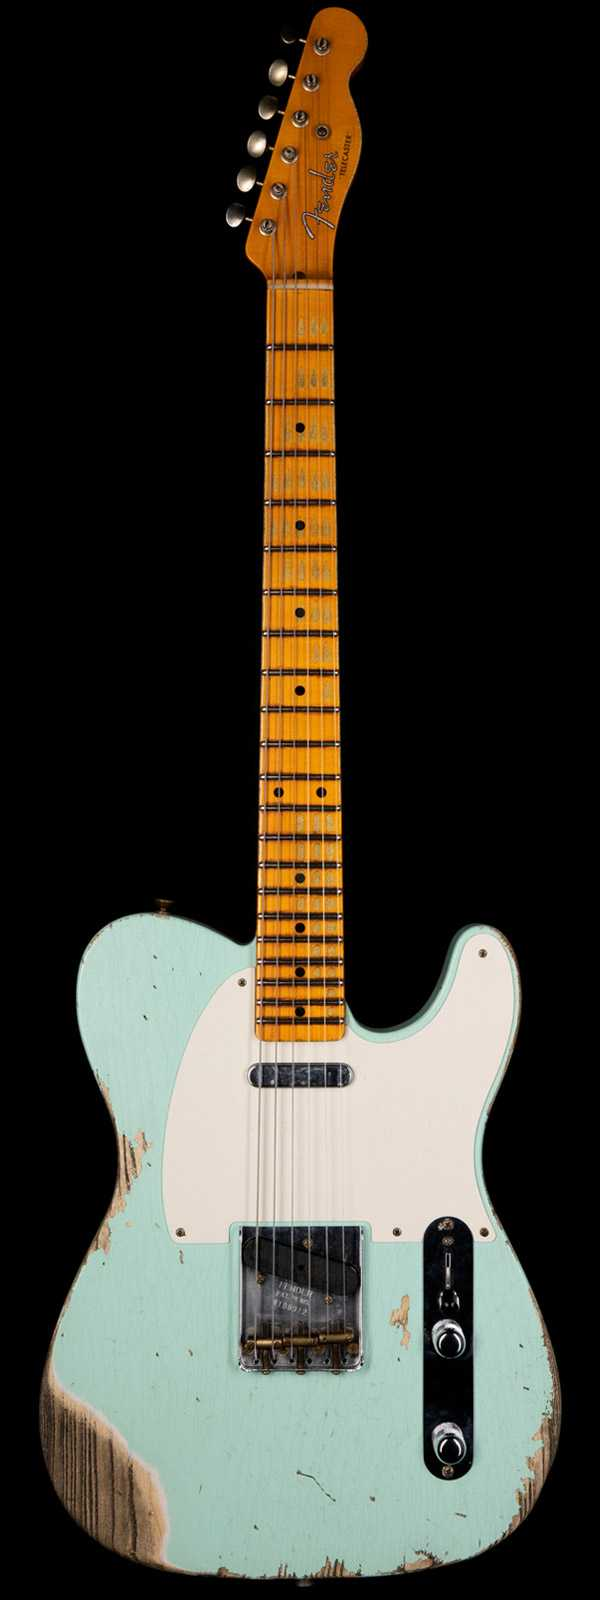 Fender Custom Shop 1952 Telecaster Heavy Relic Faded Surf Green